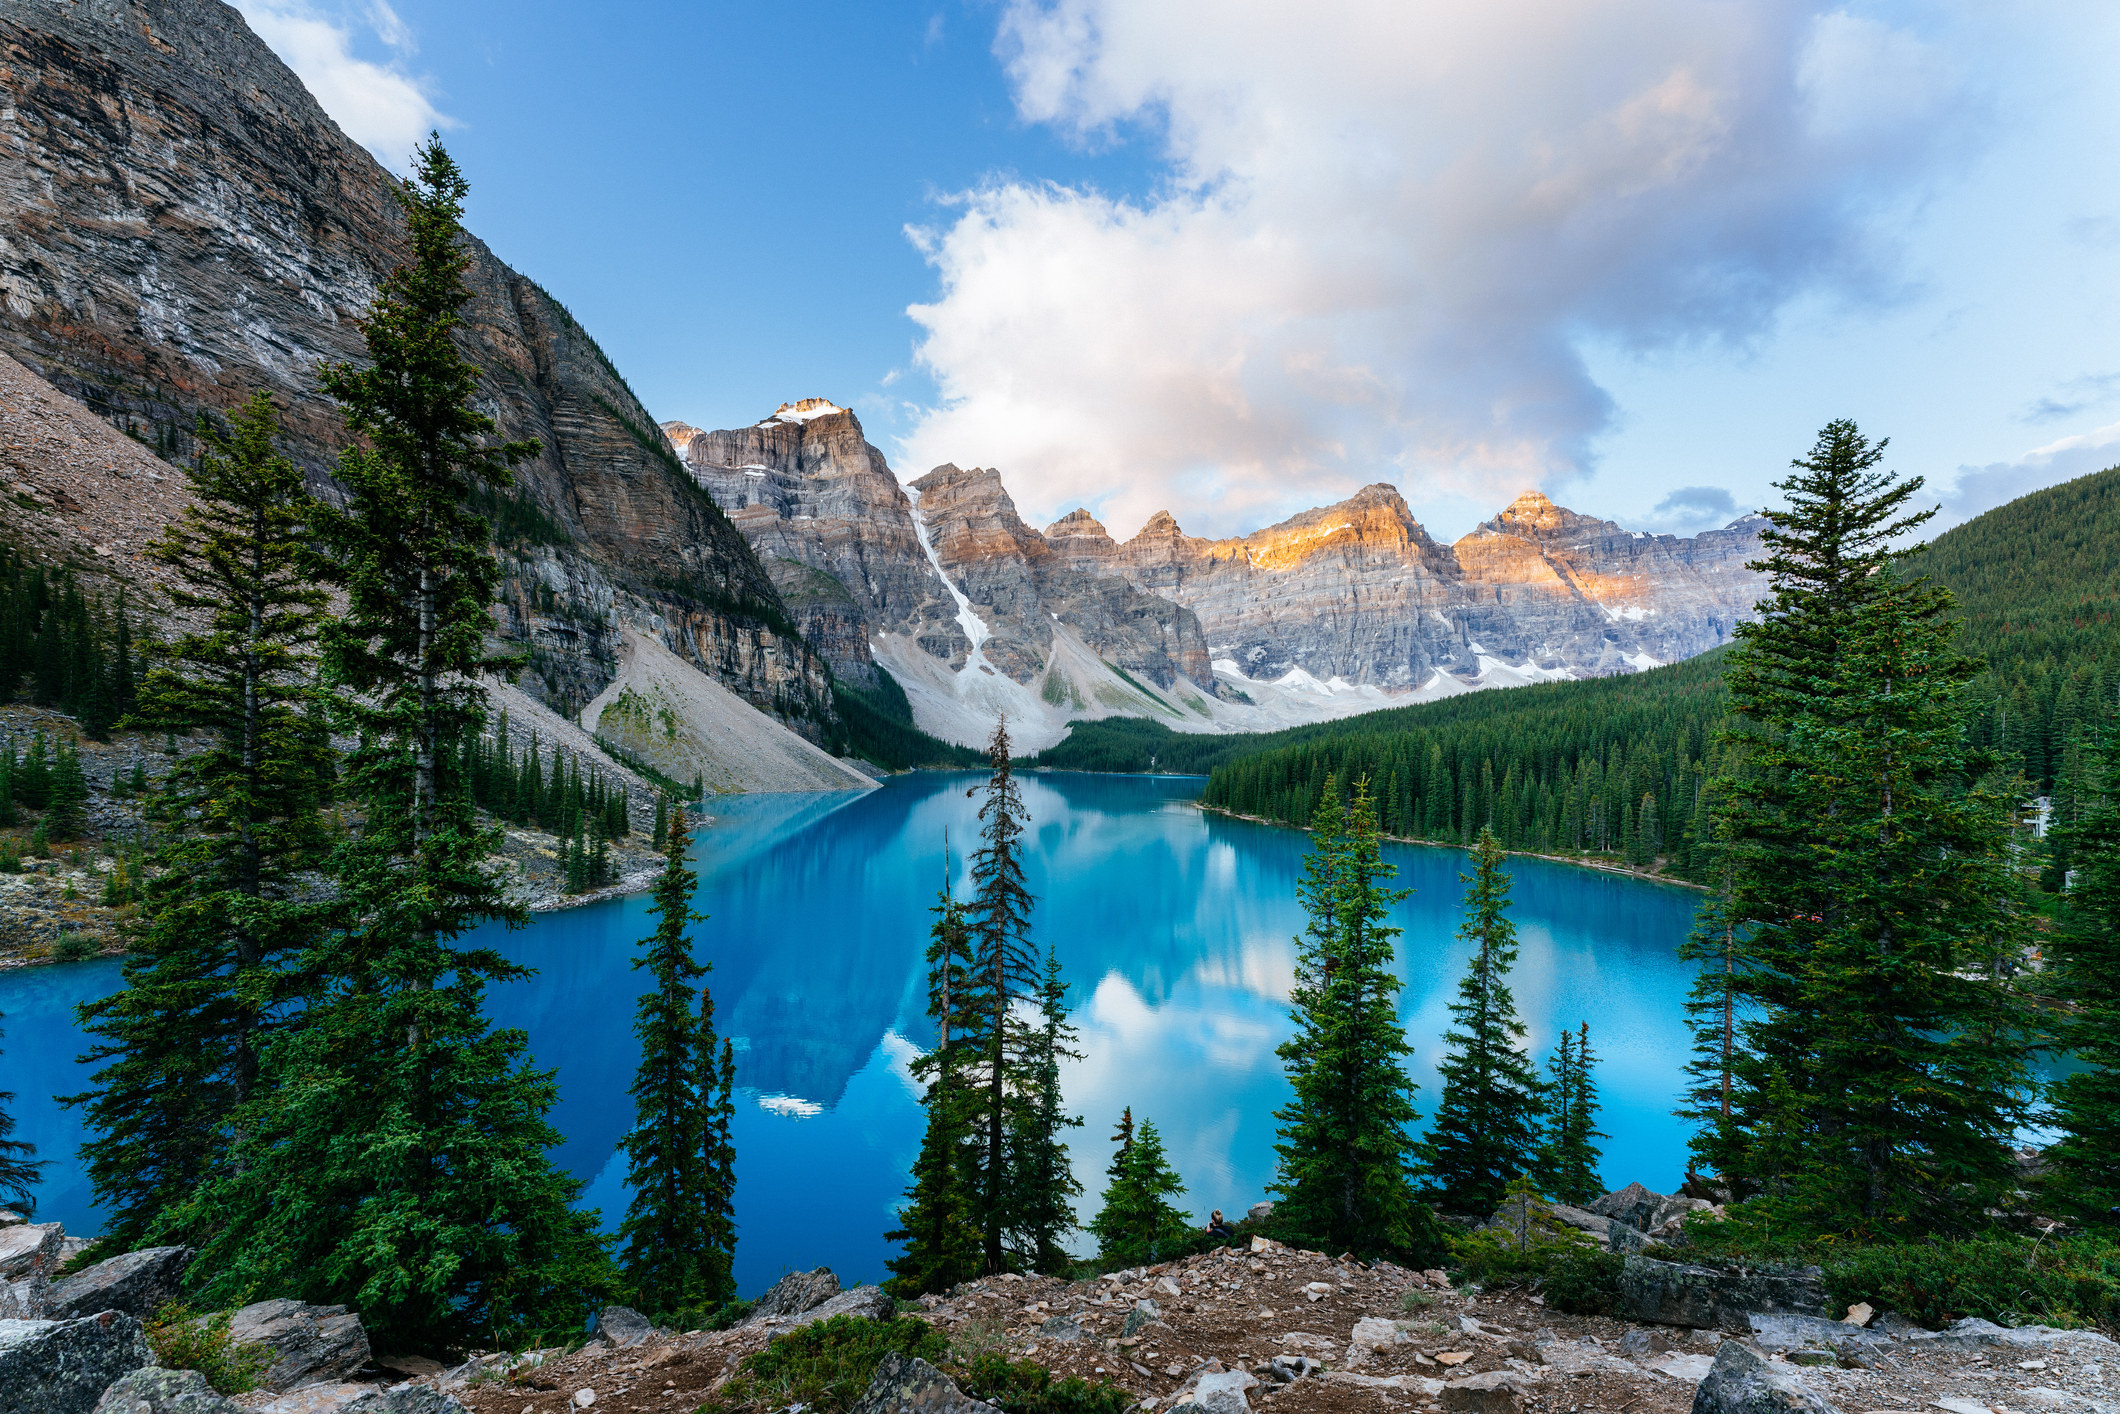 A view of the lake in Banff National Park.